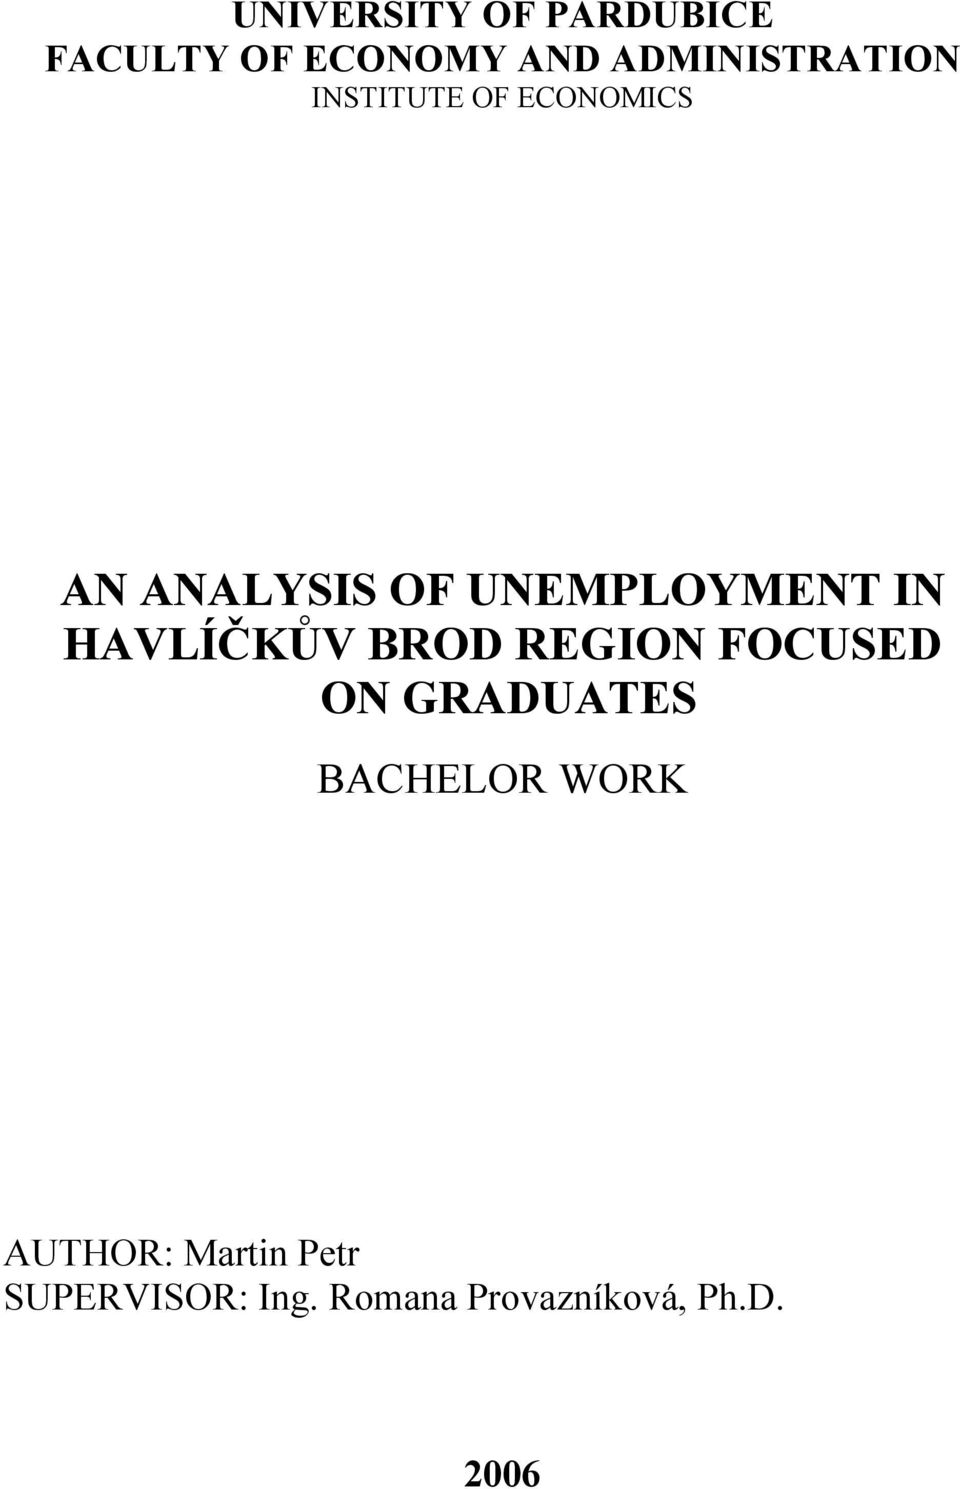 UNEMPLOYMENT IN HAVLÍČKŮV BROD REGION FOCUSED ON GRADUATES